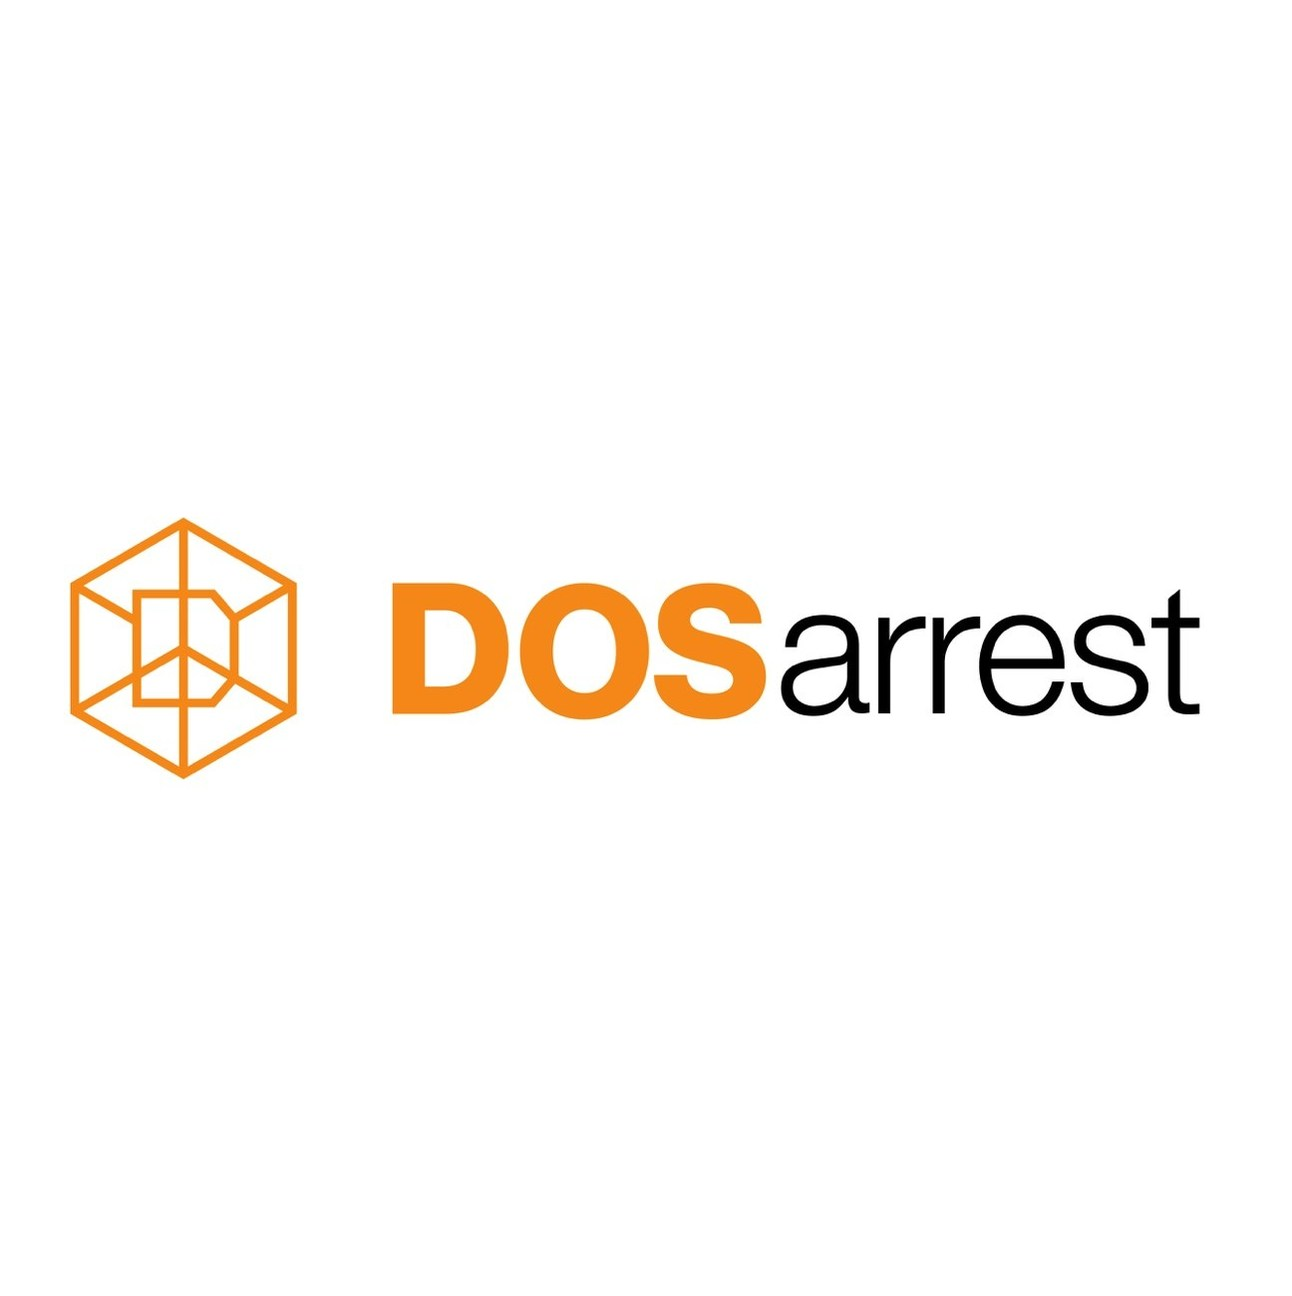 Whitelabel ITSolutions is Now Peering With DosArrest